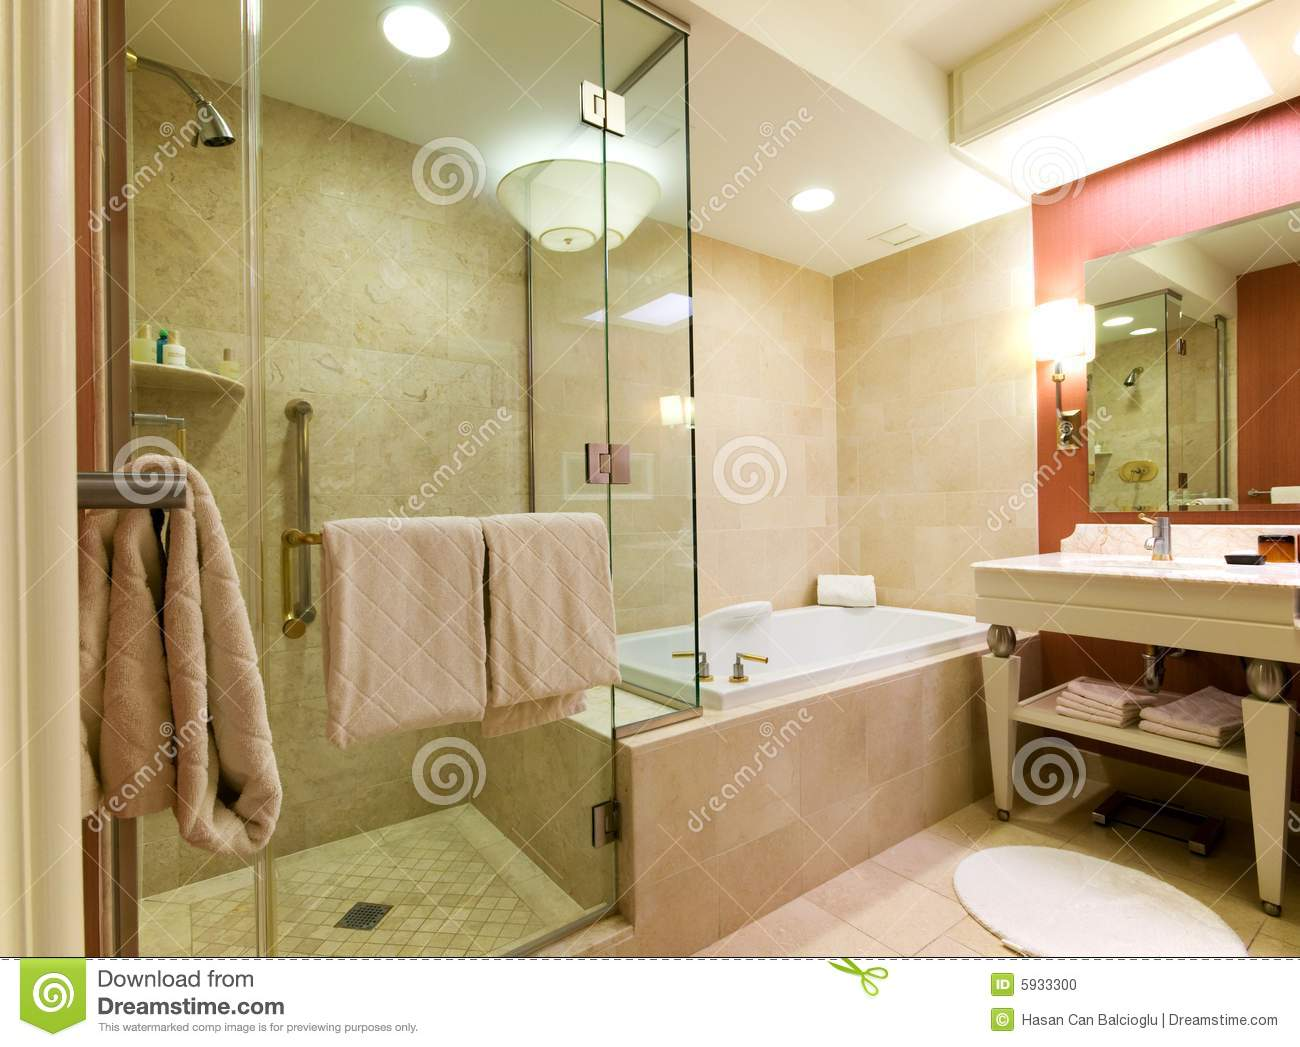 Luxury hotel bathroom stock photo image of bathtub high - Cuartos de bano vintage ...